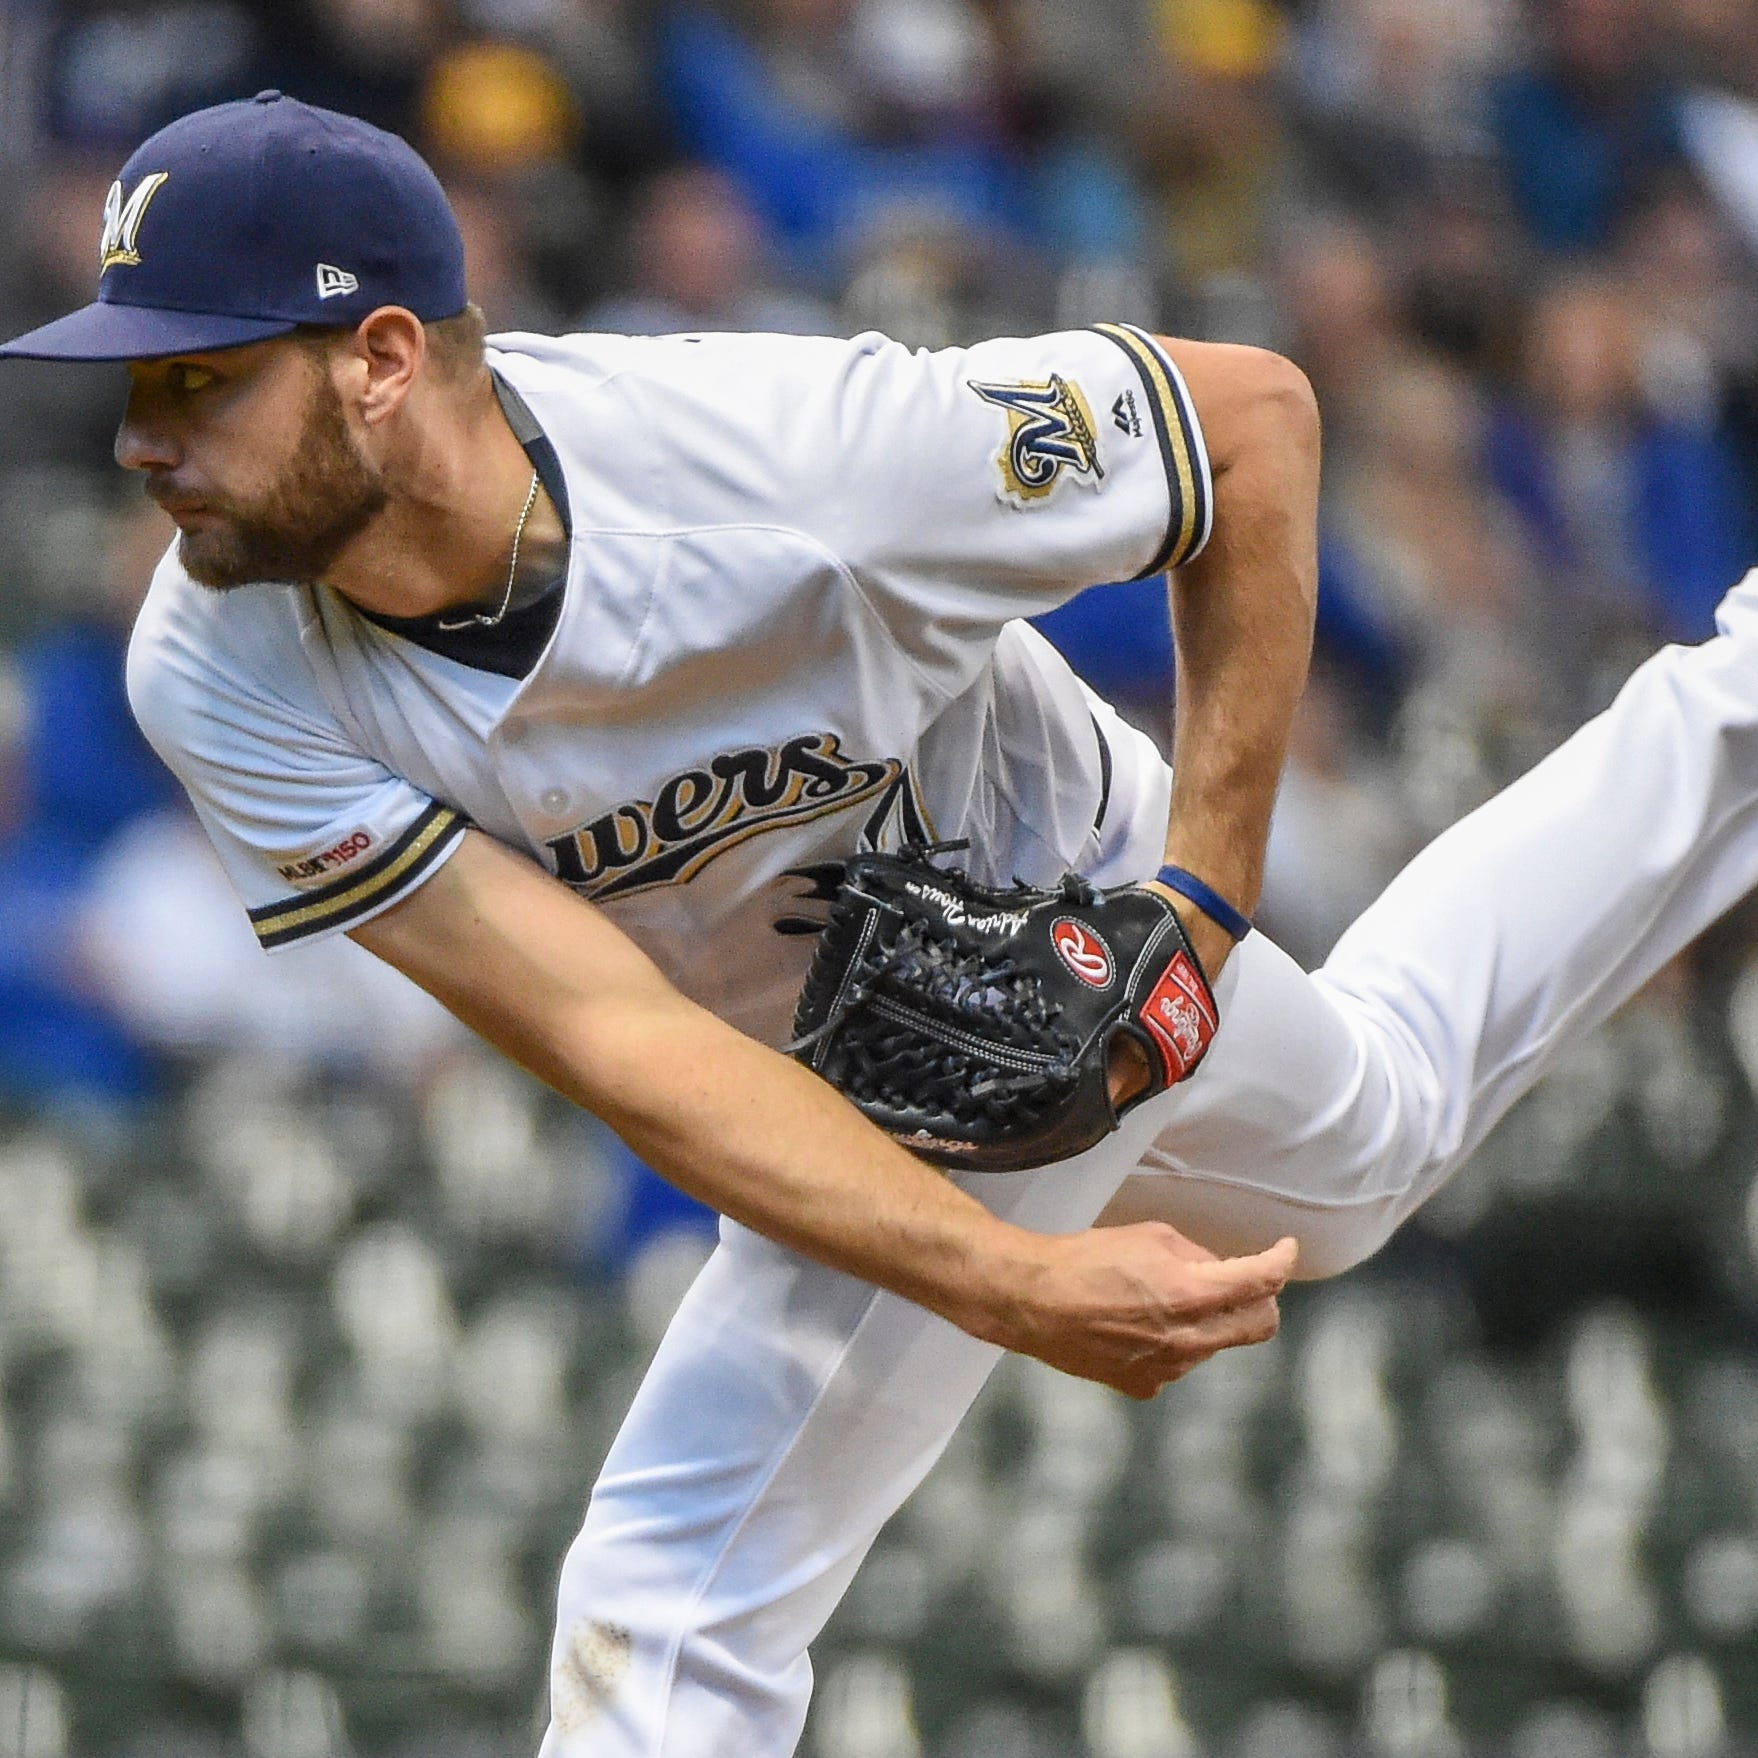 For 'openers,' the Brewers' pitching strategy against the Nationals worked beautifully